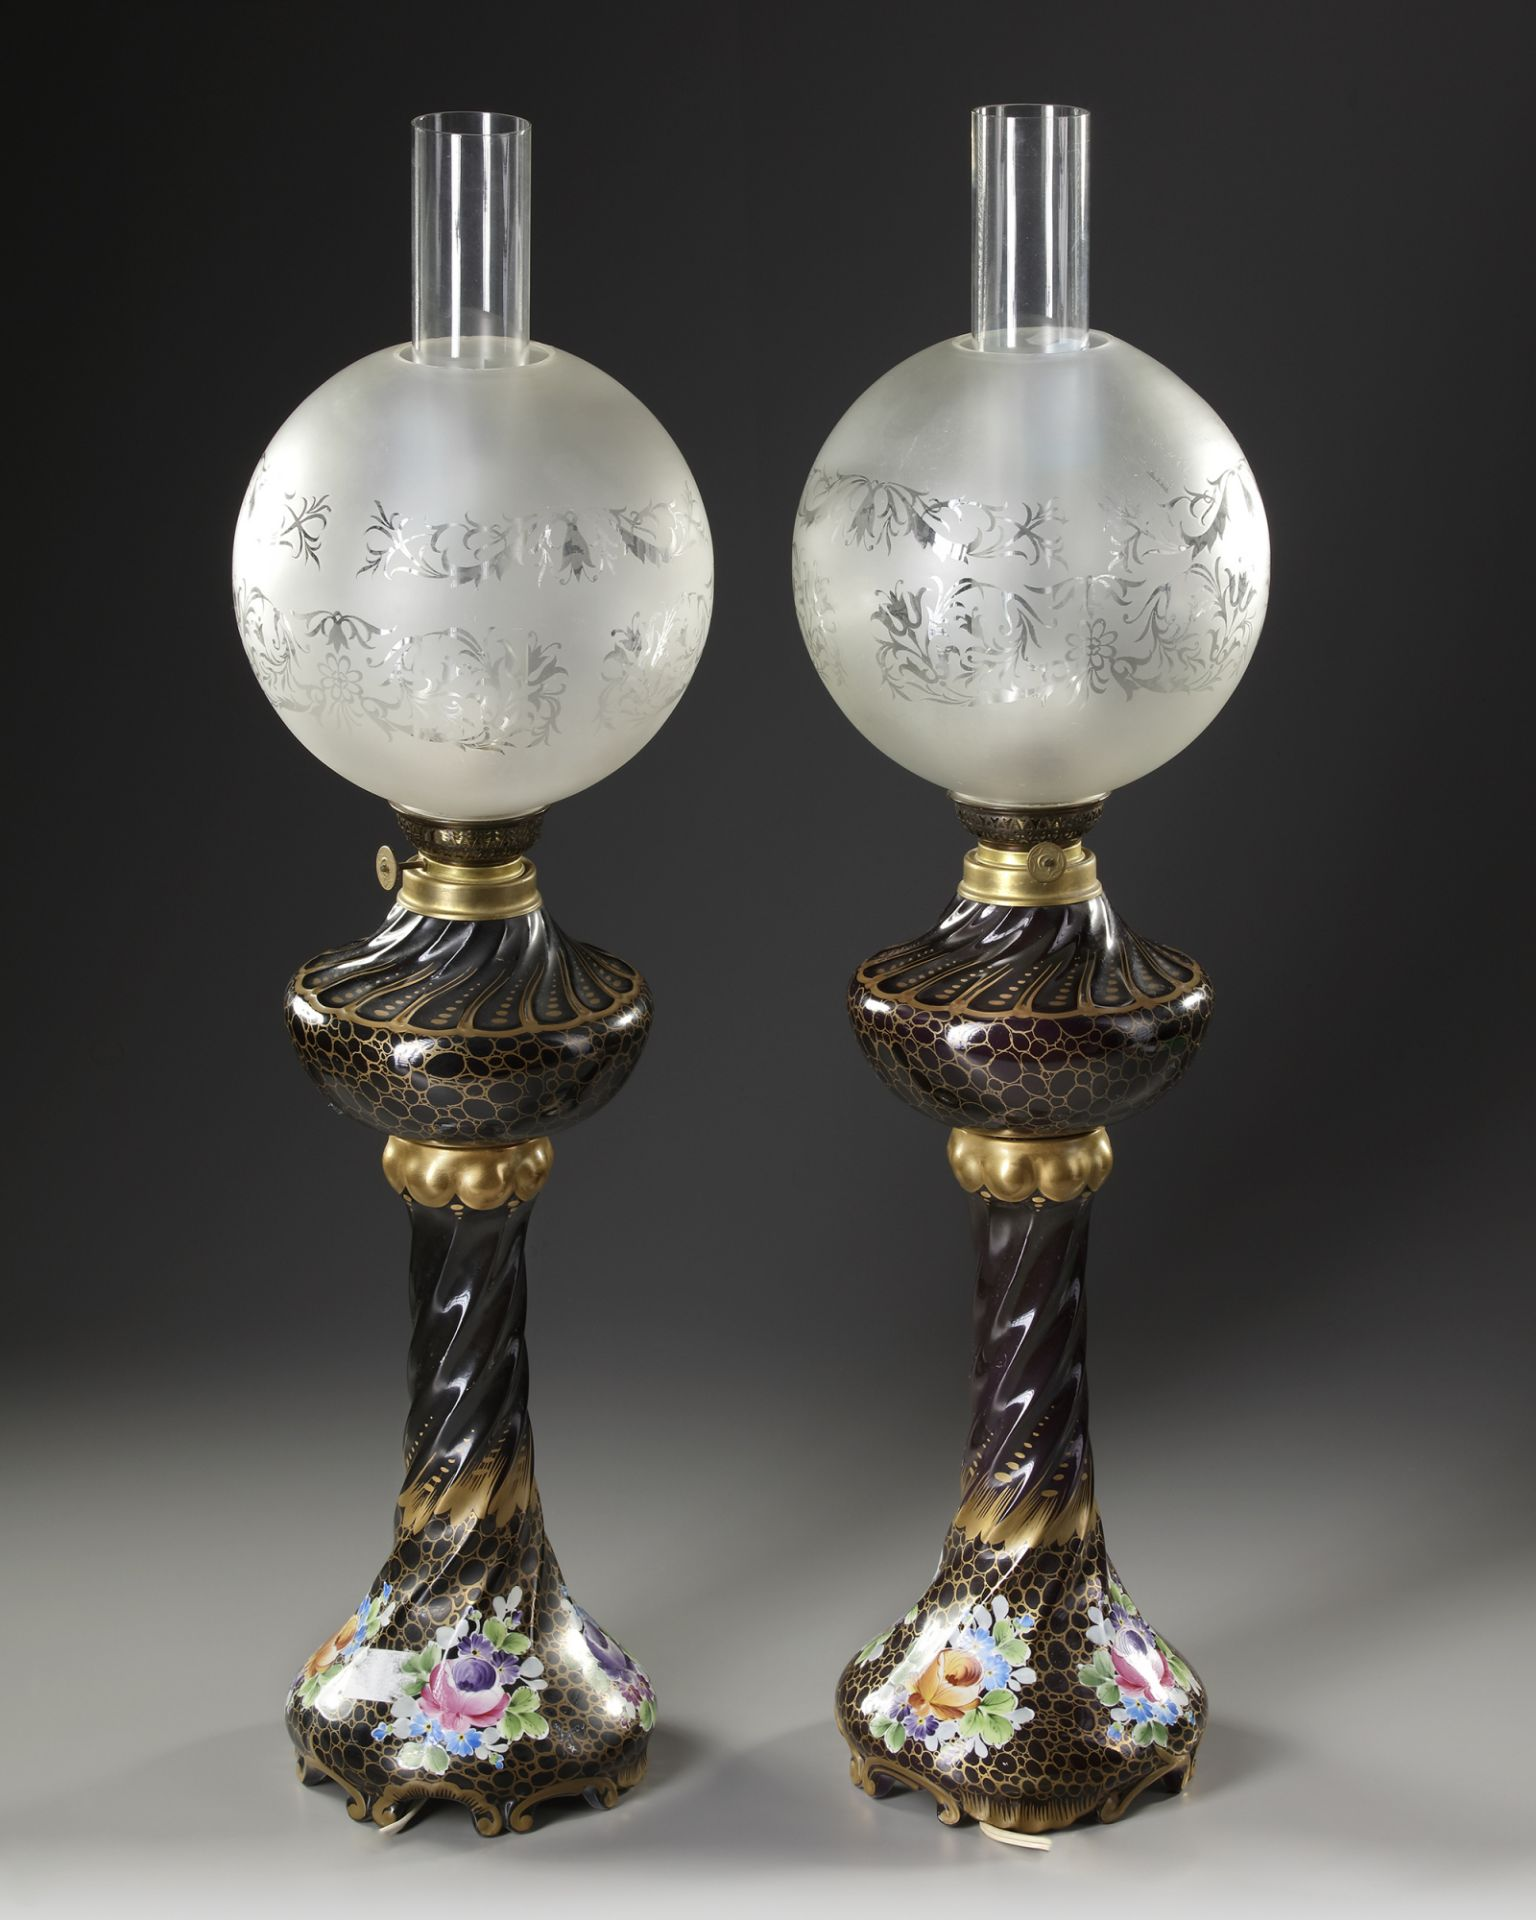 A PAIR OF FRENCH BLACK PORCELAIN LAMPS, LATE 19TH CENTURY - Image 2 of 2